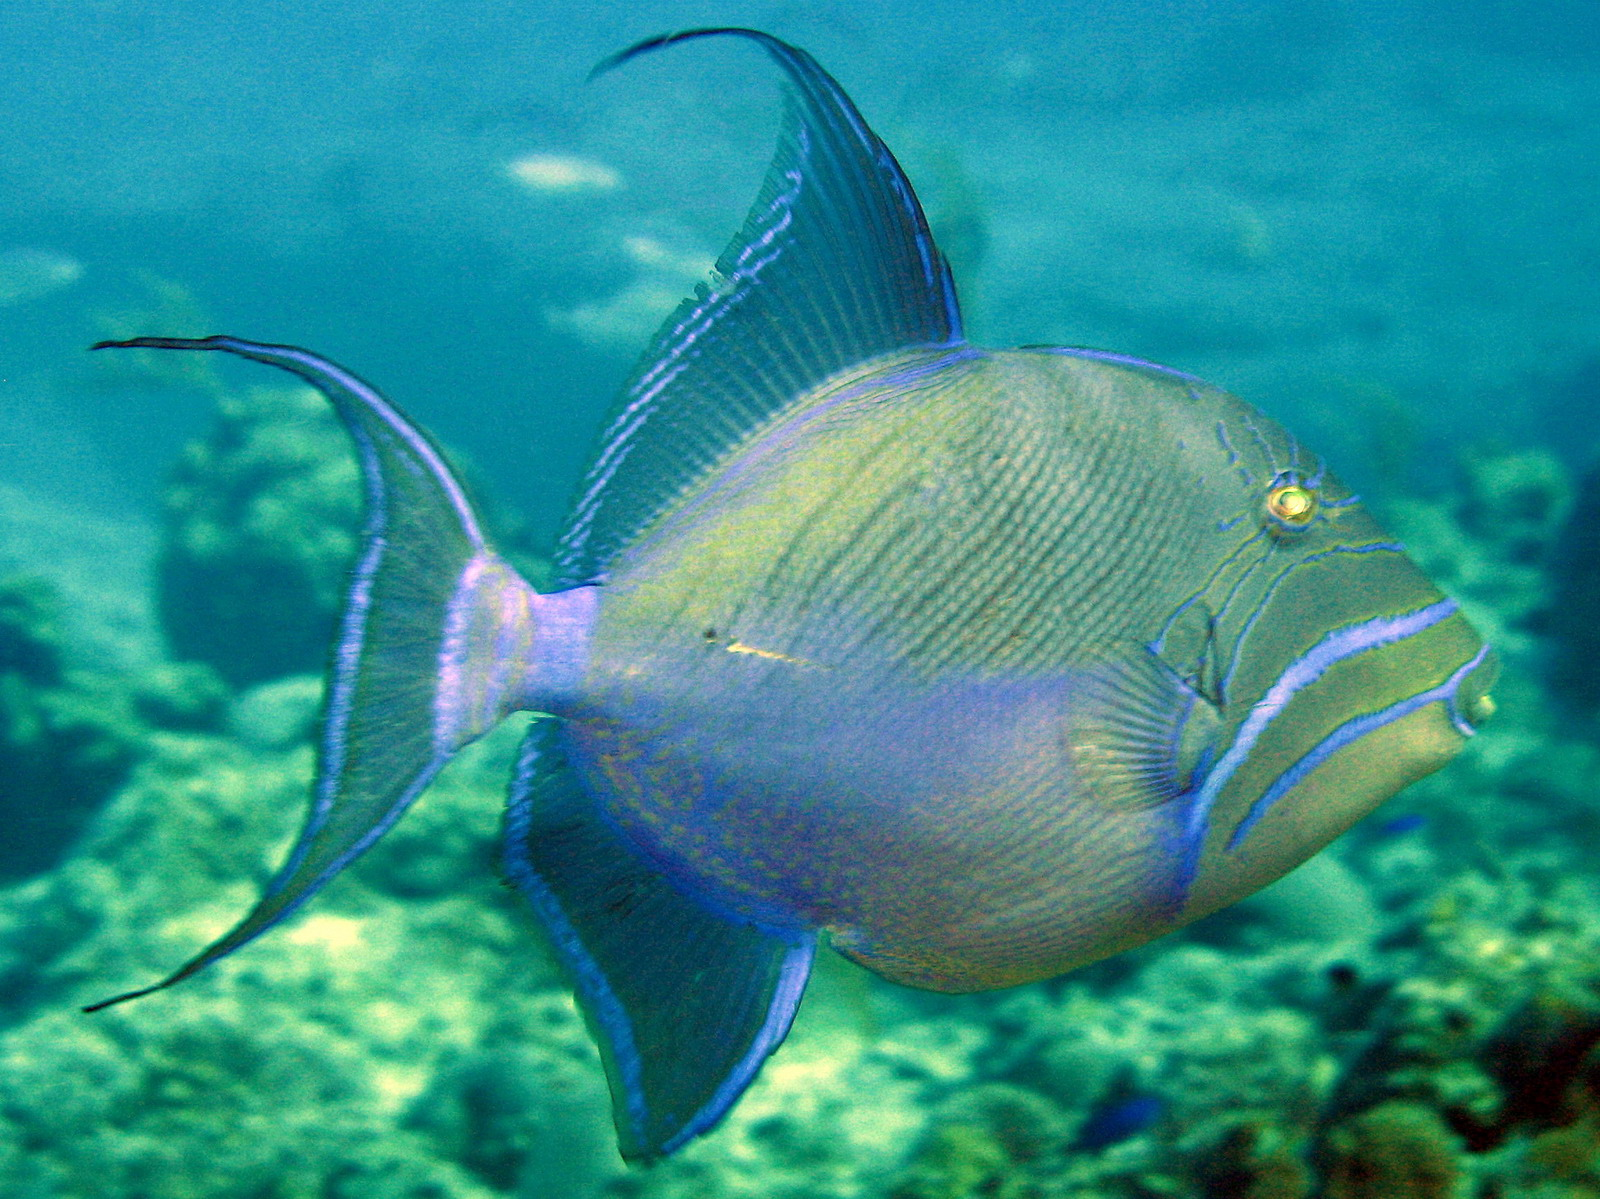 Queen triggerfish on the bottom wallpaper